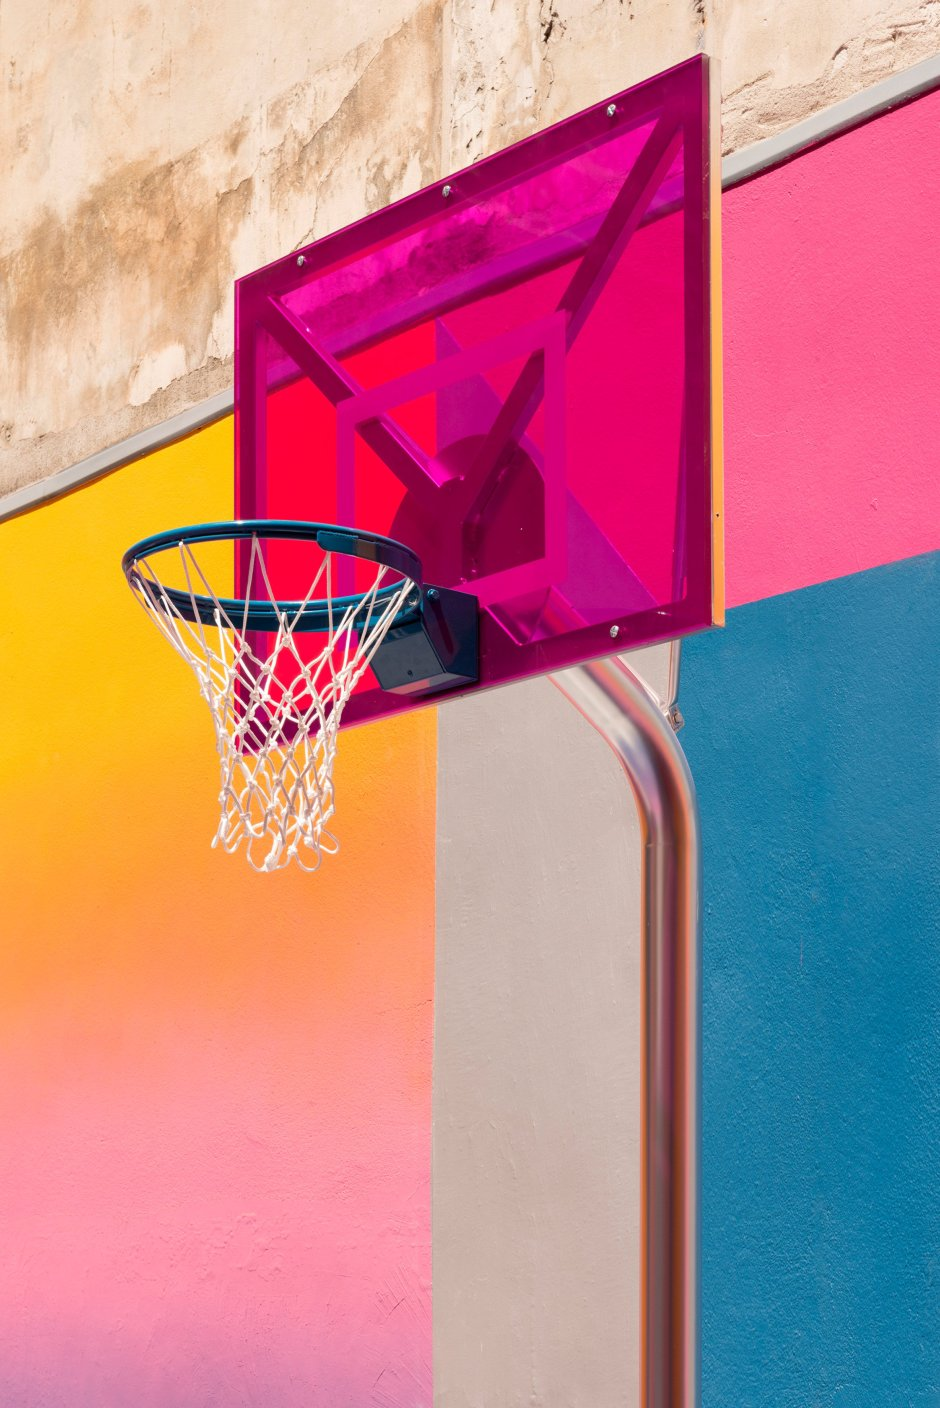 basket-court-pigalle-studio-architecture-public-leisure-paris-france-_dezeen_2364_col_7